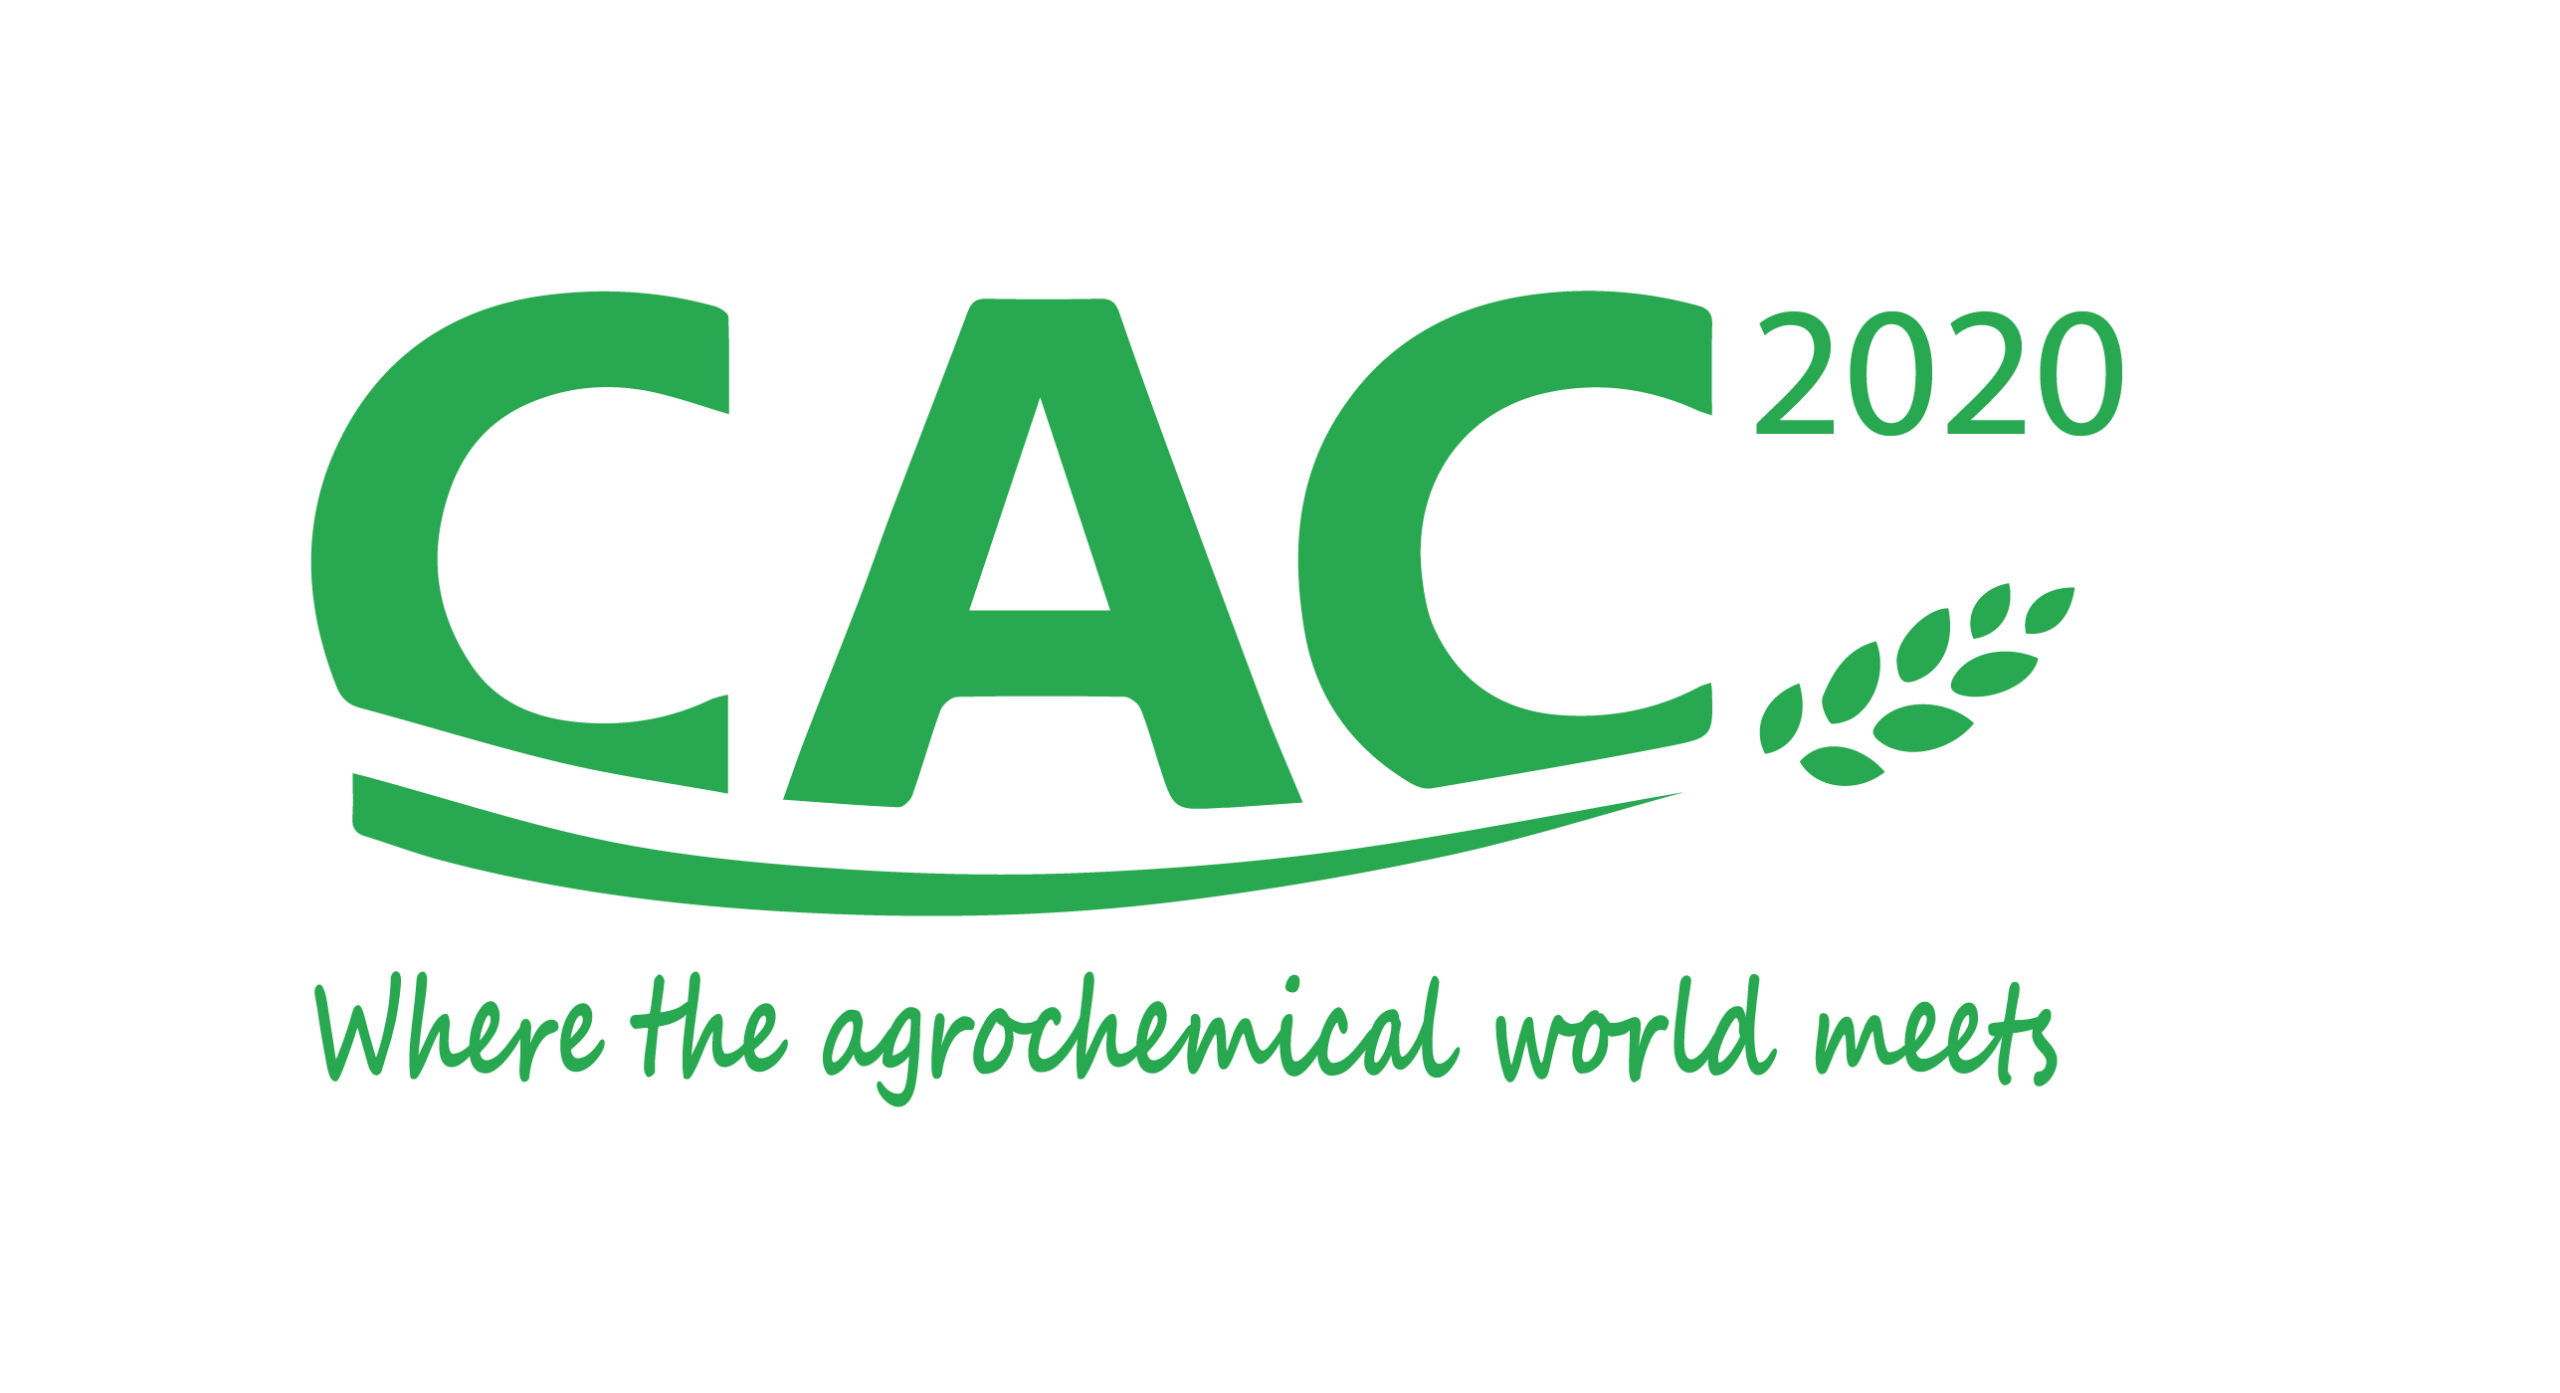 Visit us at China International Agrochemical & Crop Protection Exhibition